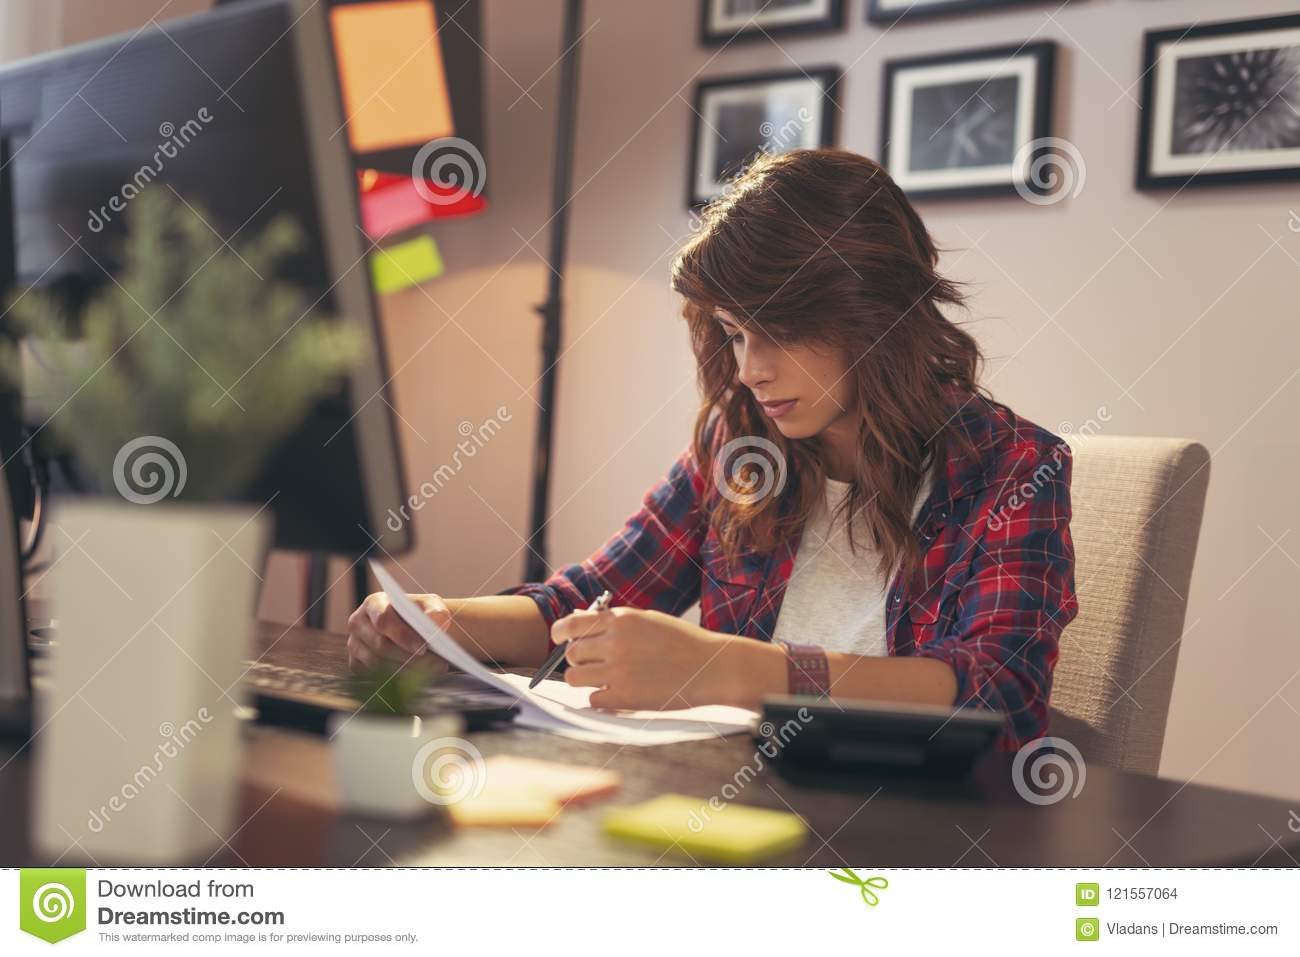 Woman reviewing documents in a home office